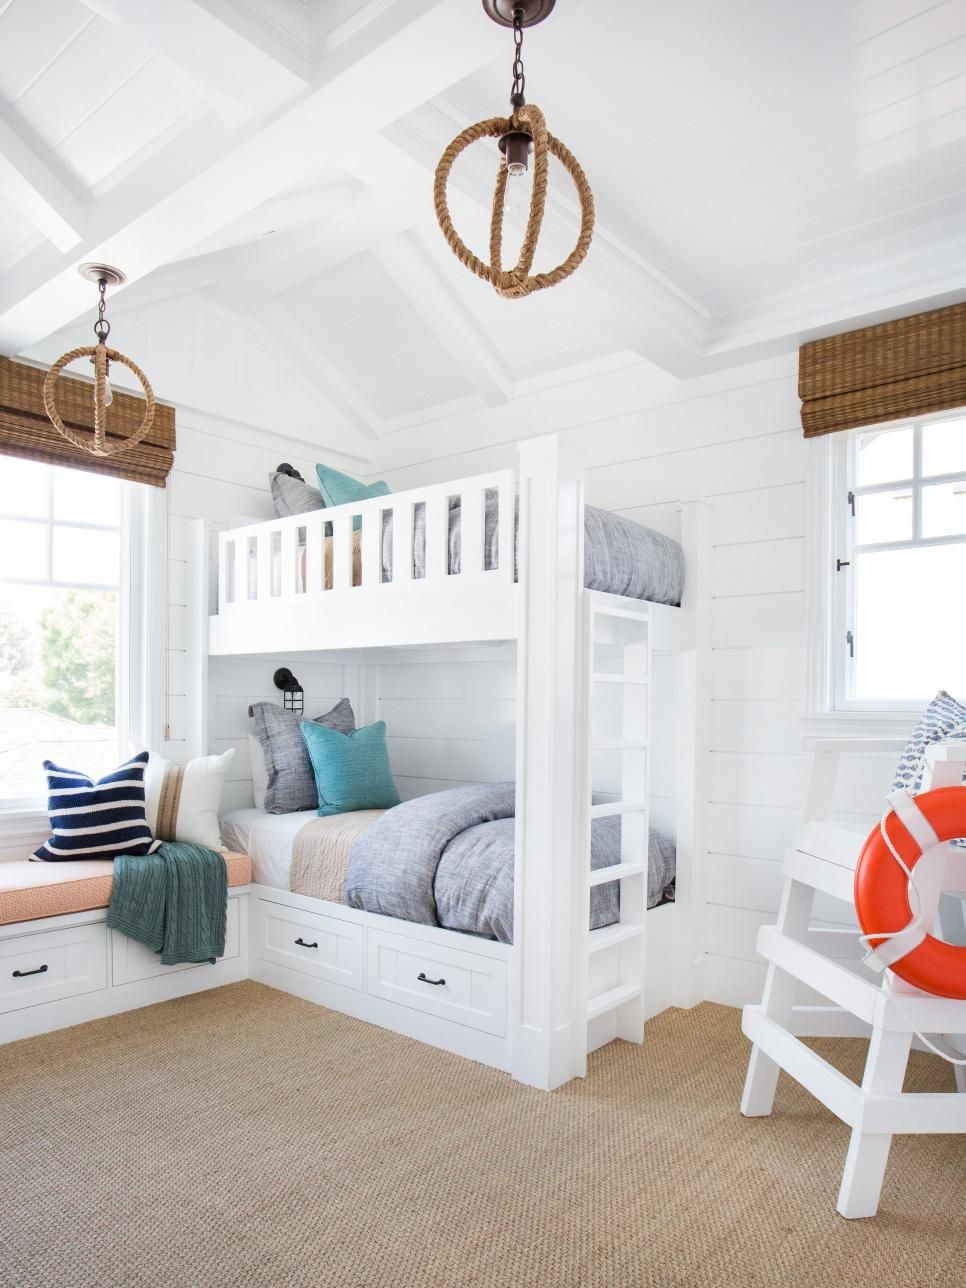 Bunk Beds Designs For Kids Rooms: Built-in Bunk Beds Are Functional And Adorable In This